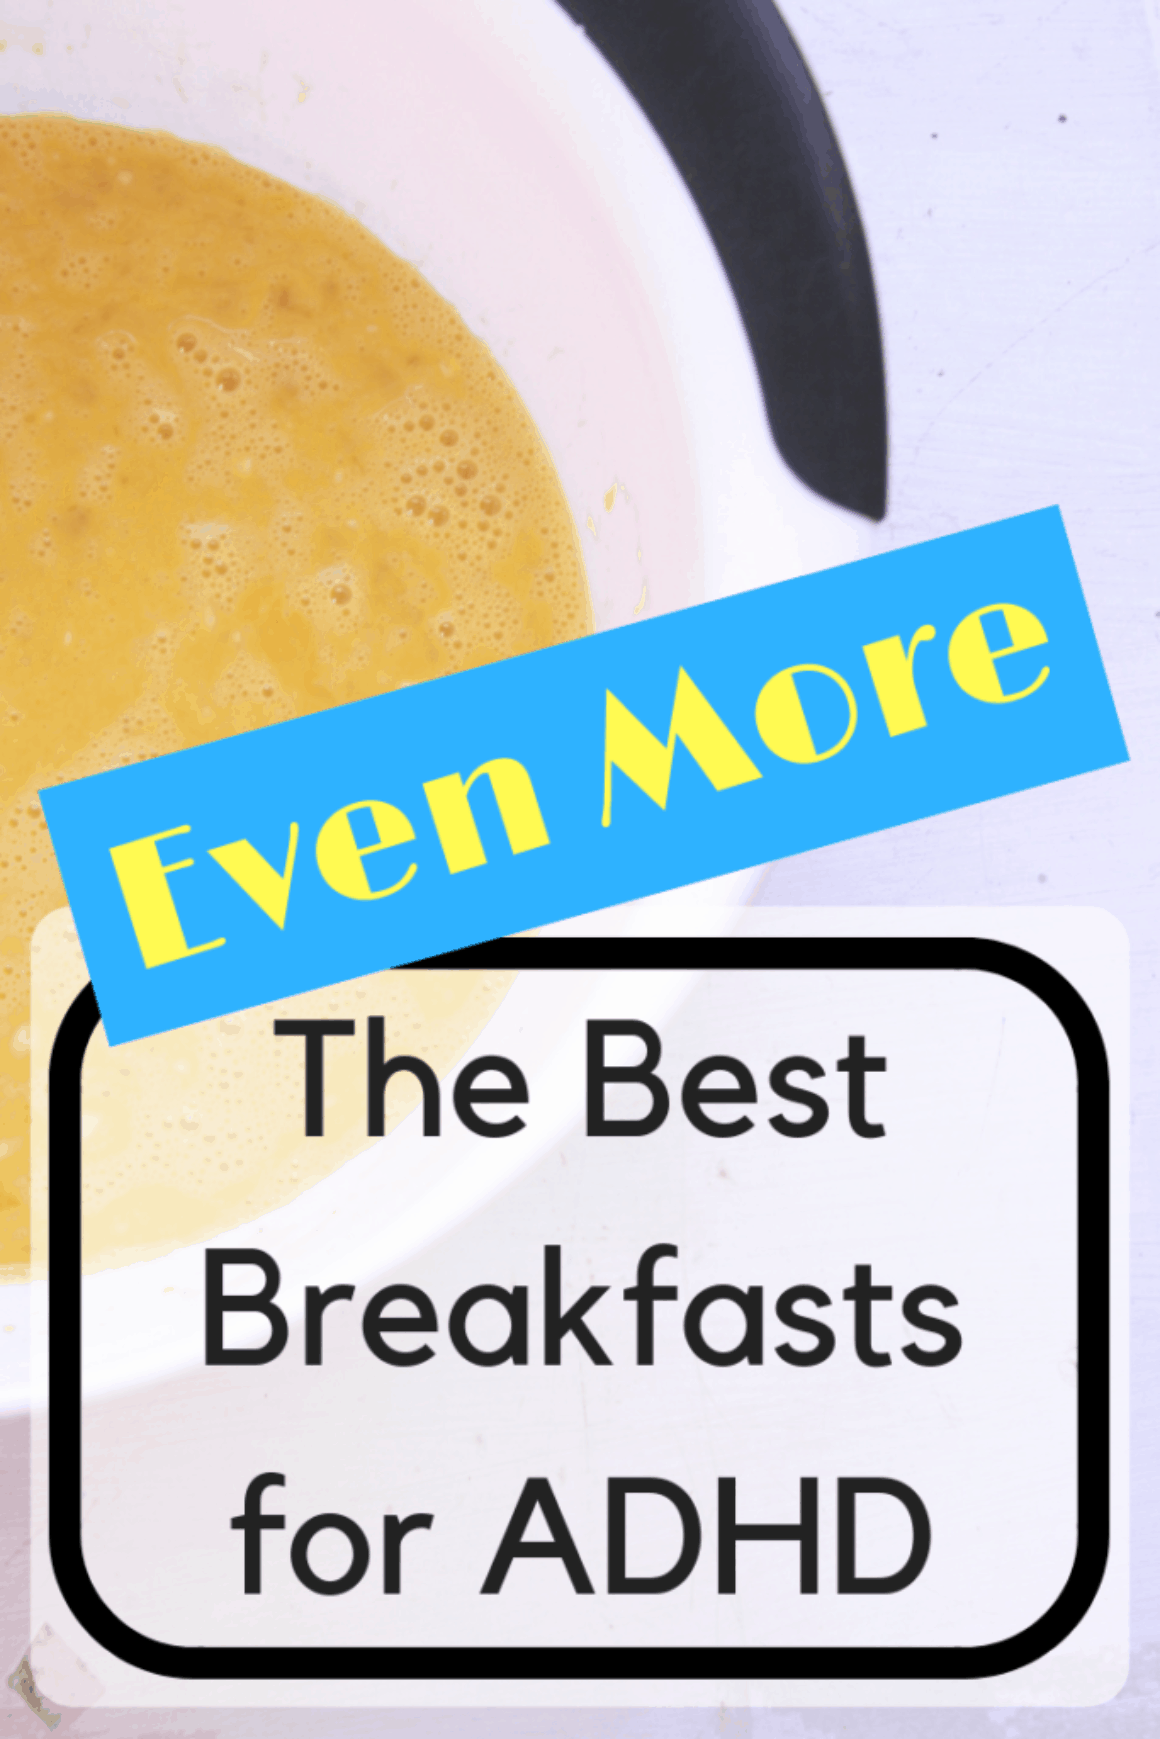 More Best Breakfasts for ADHD